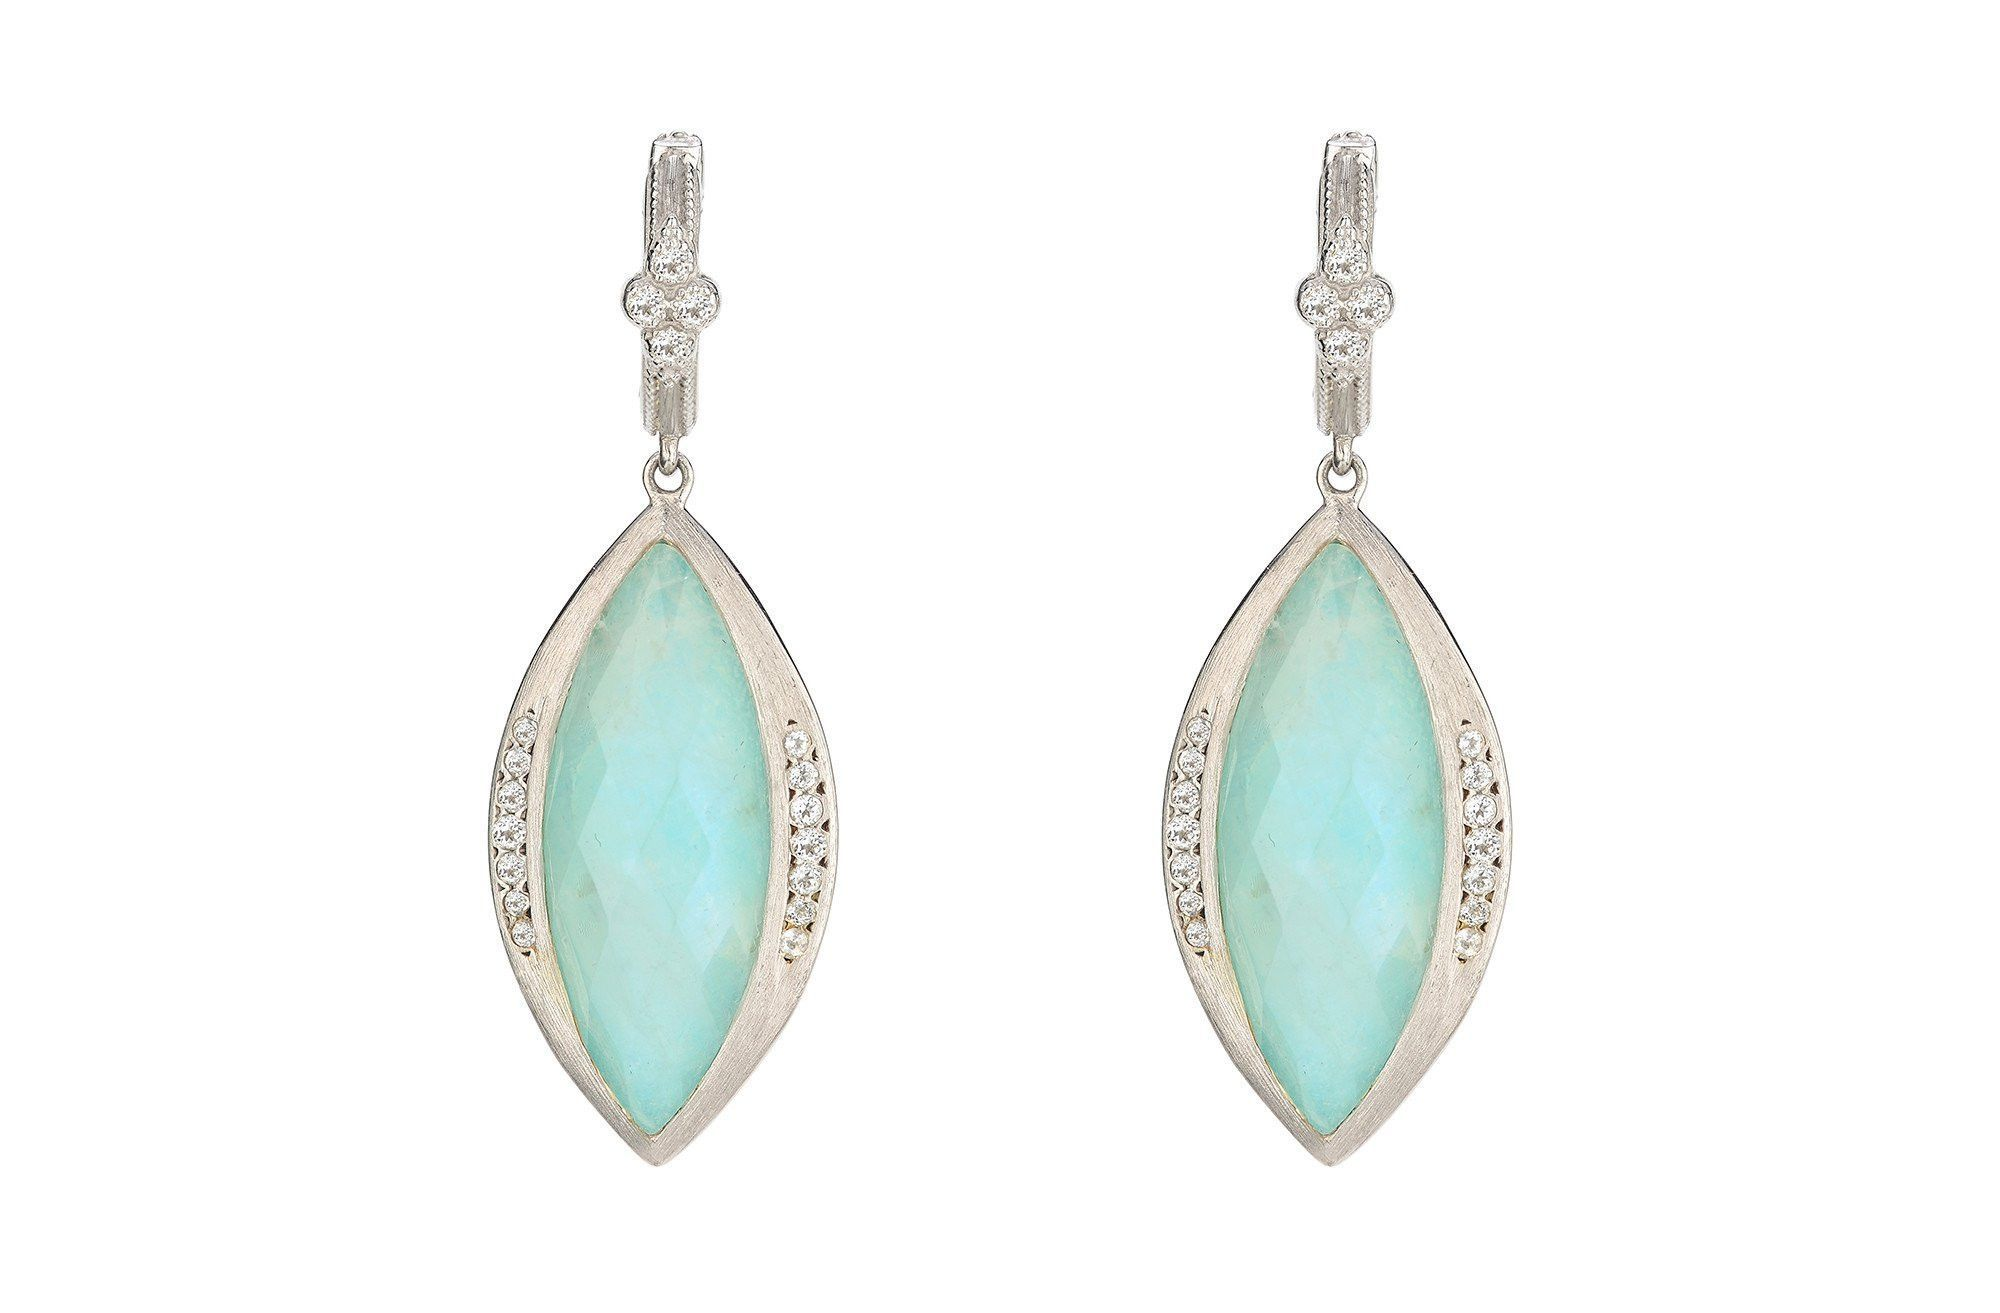 Large Marquis Stone Earrings